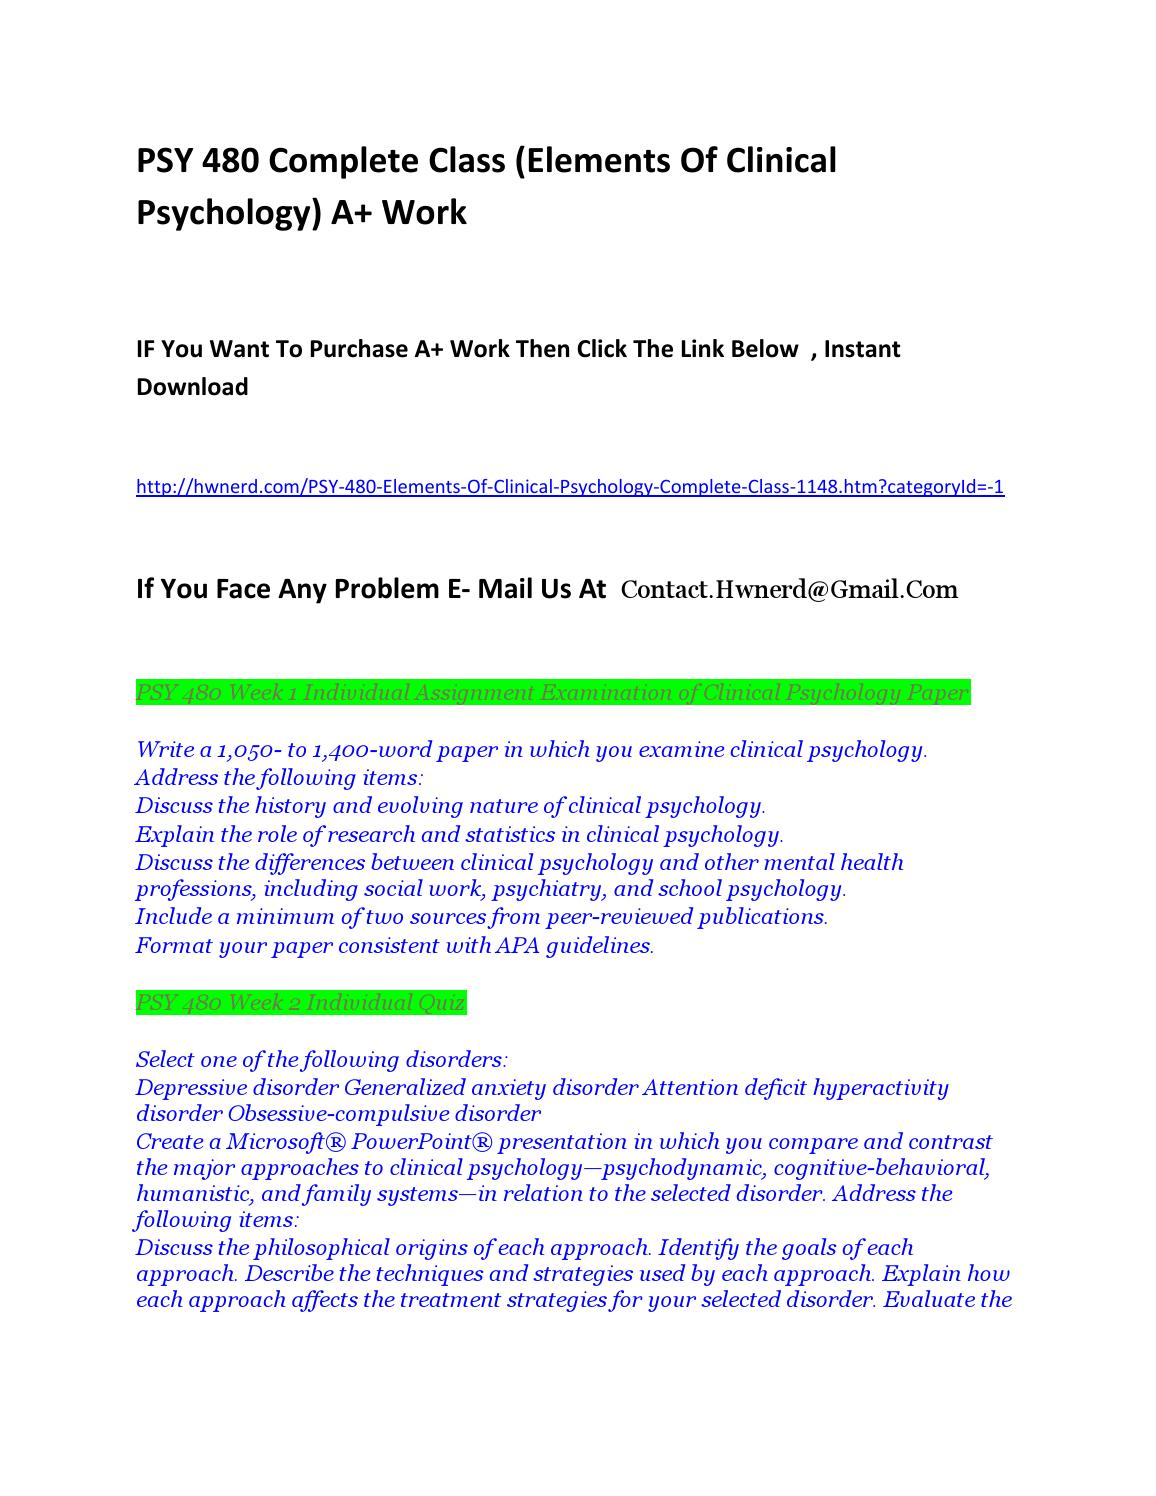 psy 480 examination of clinical psychology paper